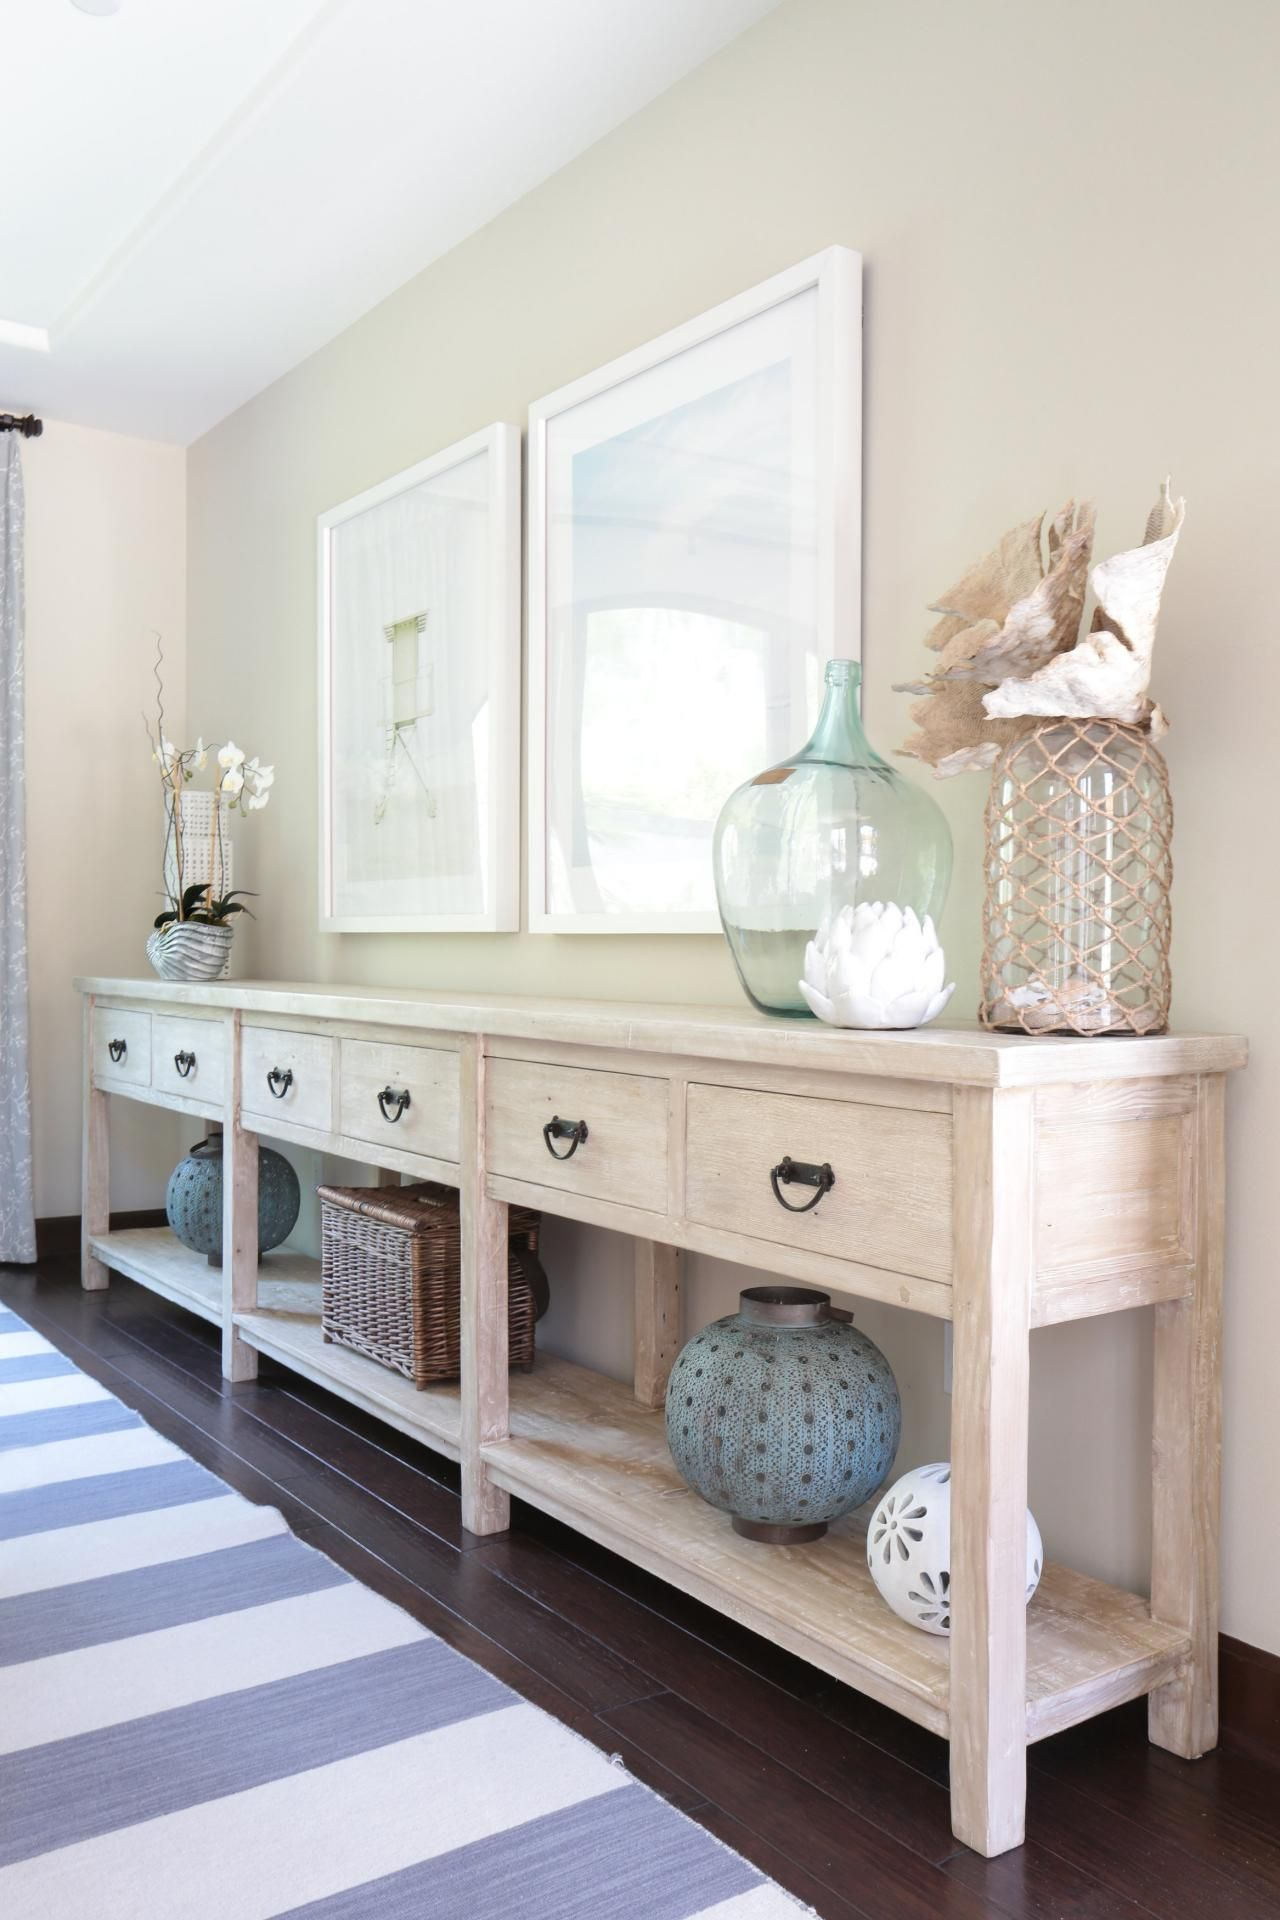 HGTV features a transitional coastal neutral dining room with a